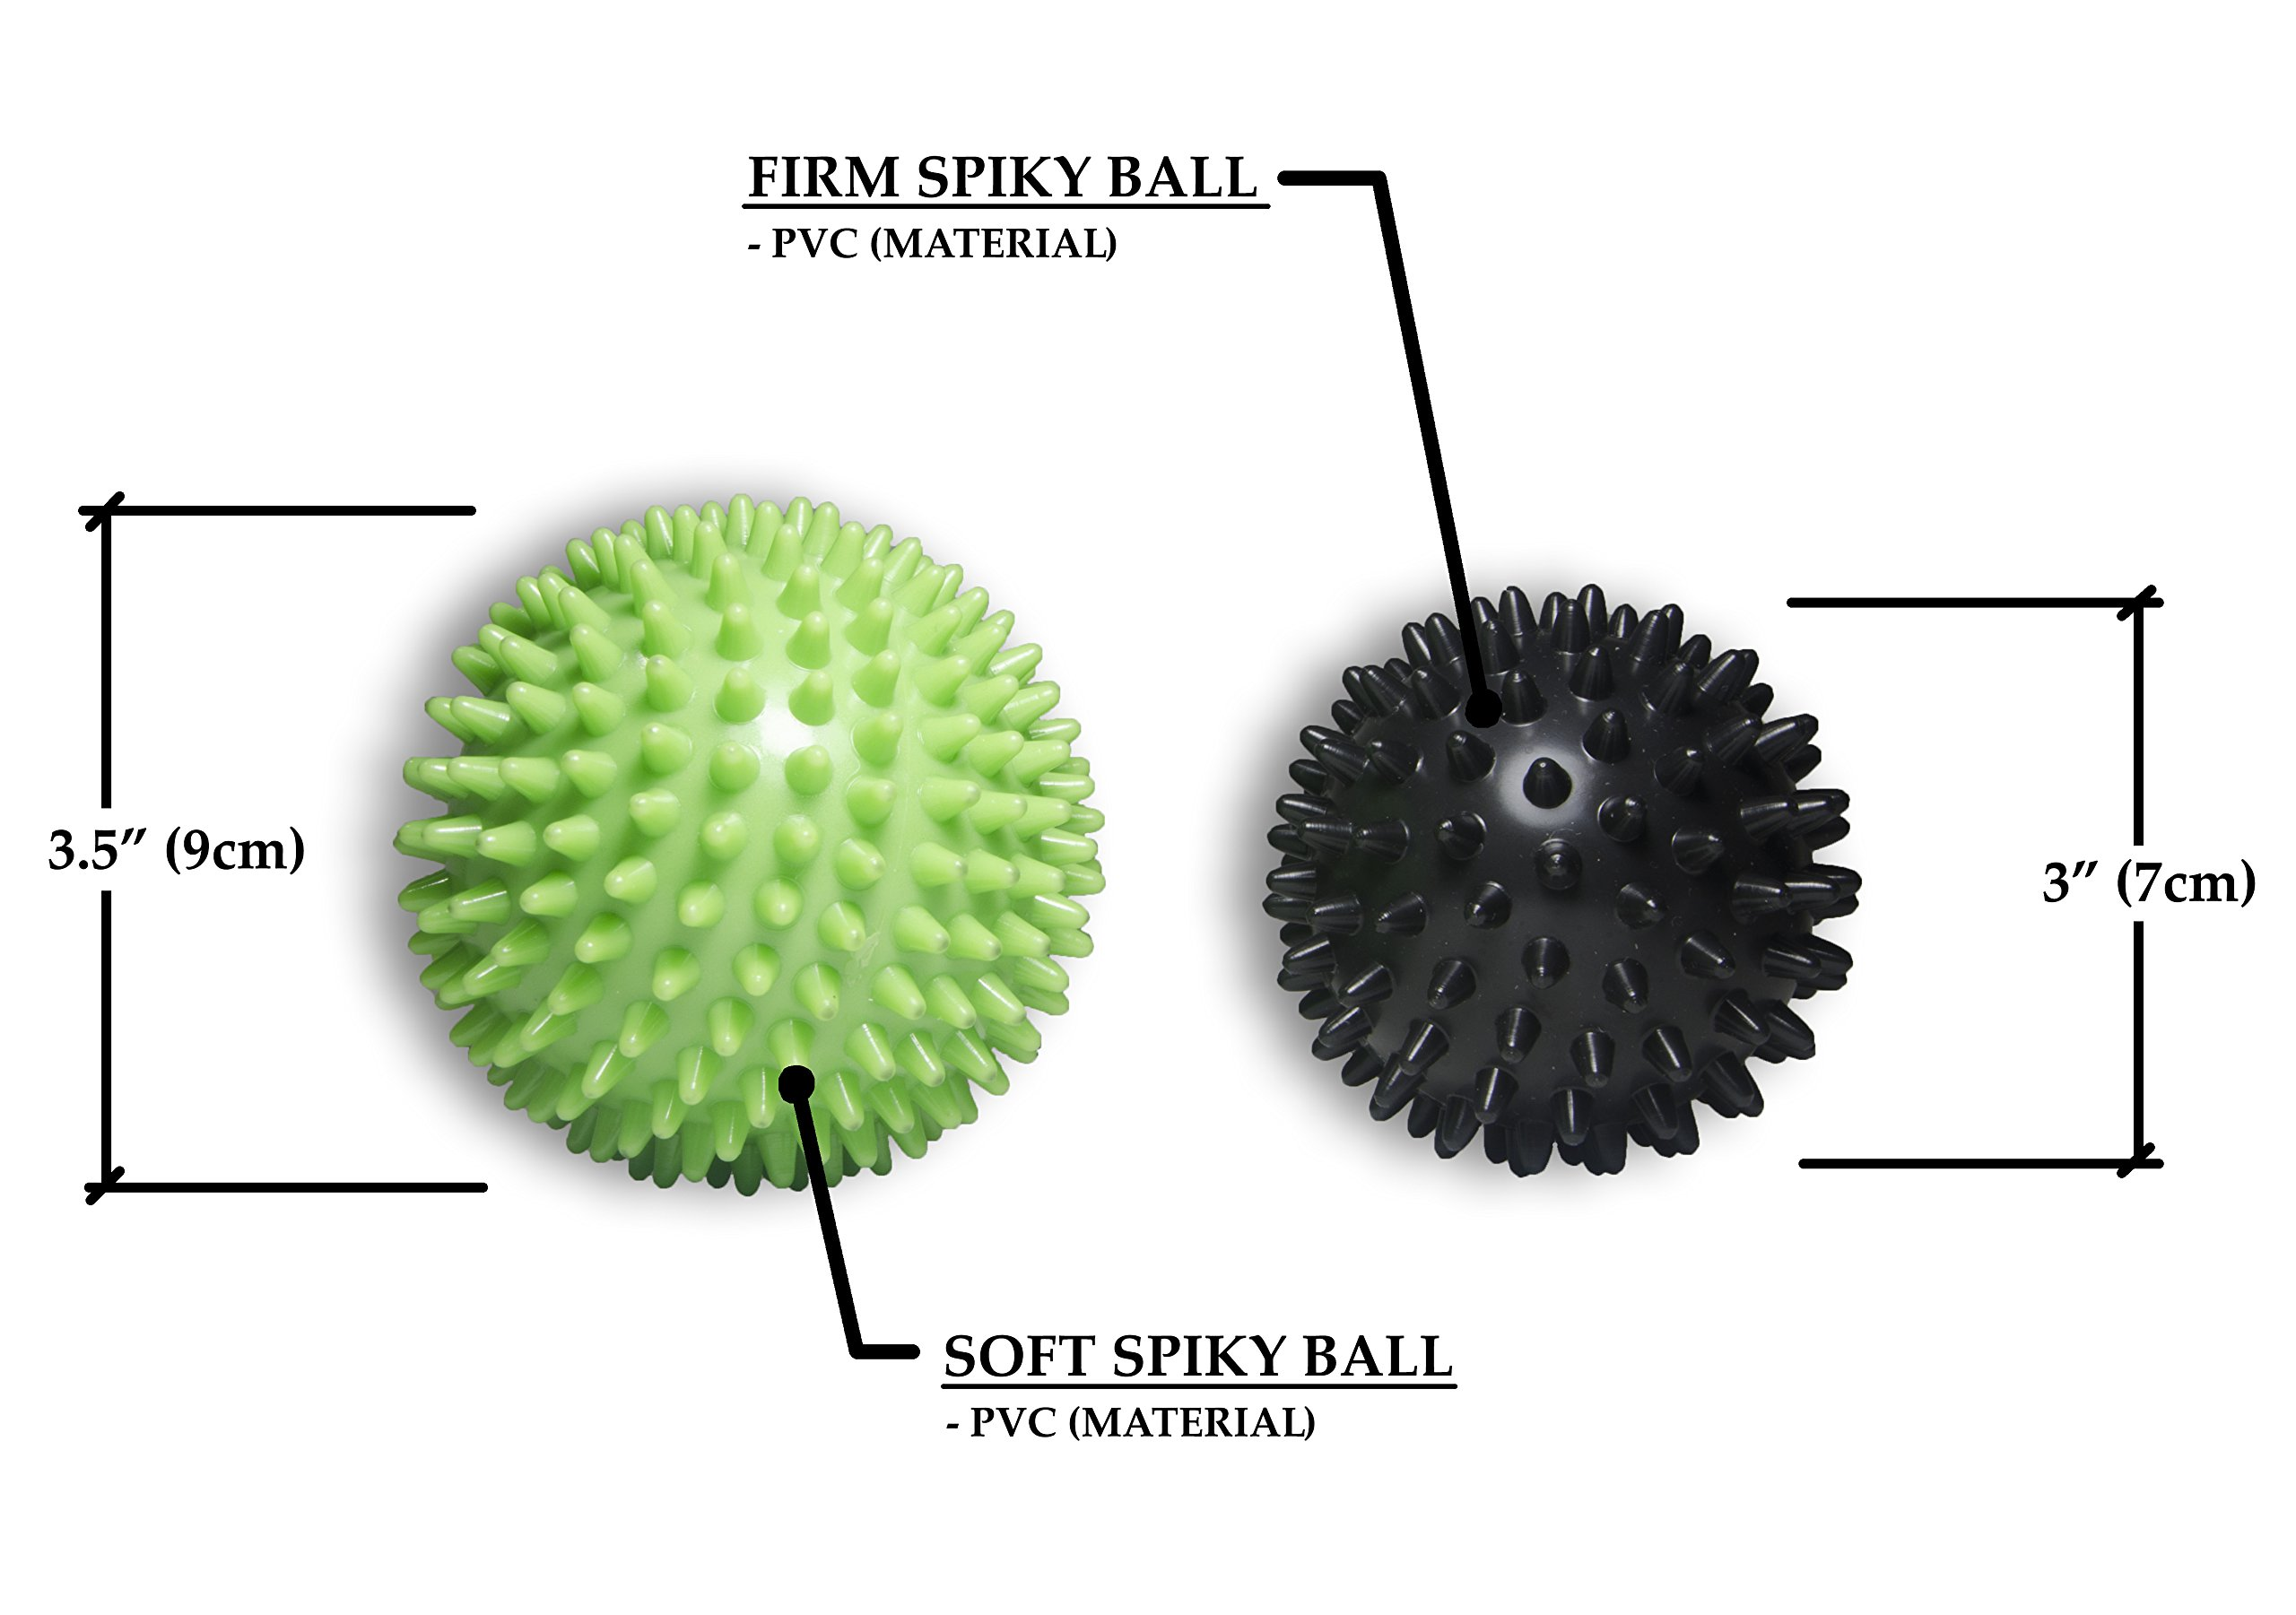 Flex Life Massage Ball Set & Muscle Roller Stick Massager - 2 Spiky Ball, 1 Lacrosse Ball, 1 Peanut Ball, (1) 18'' Roller Stick. Great Rollers For Plantar Fasciitis, Mobility, Recovery, Soreness by Flex Life (Image #3)